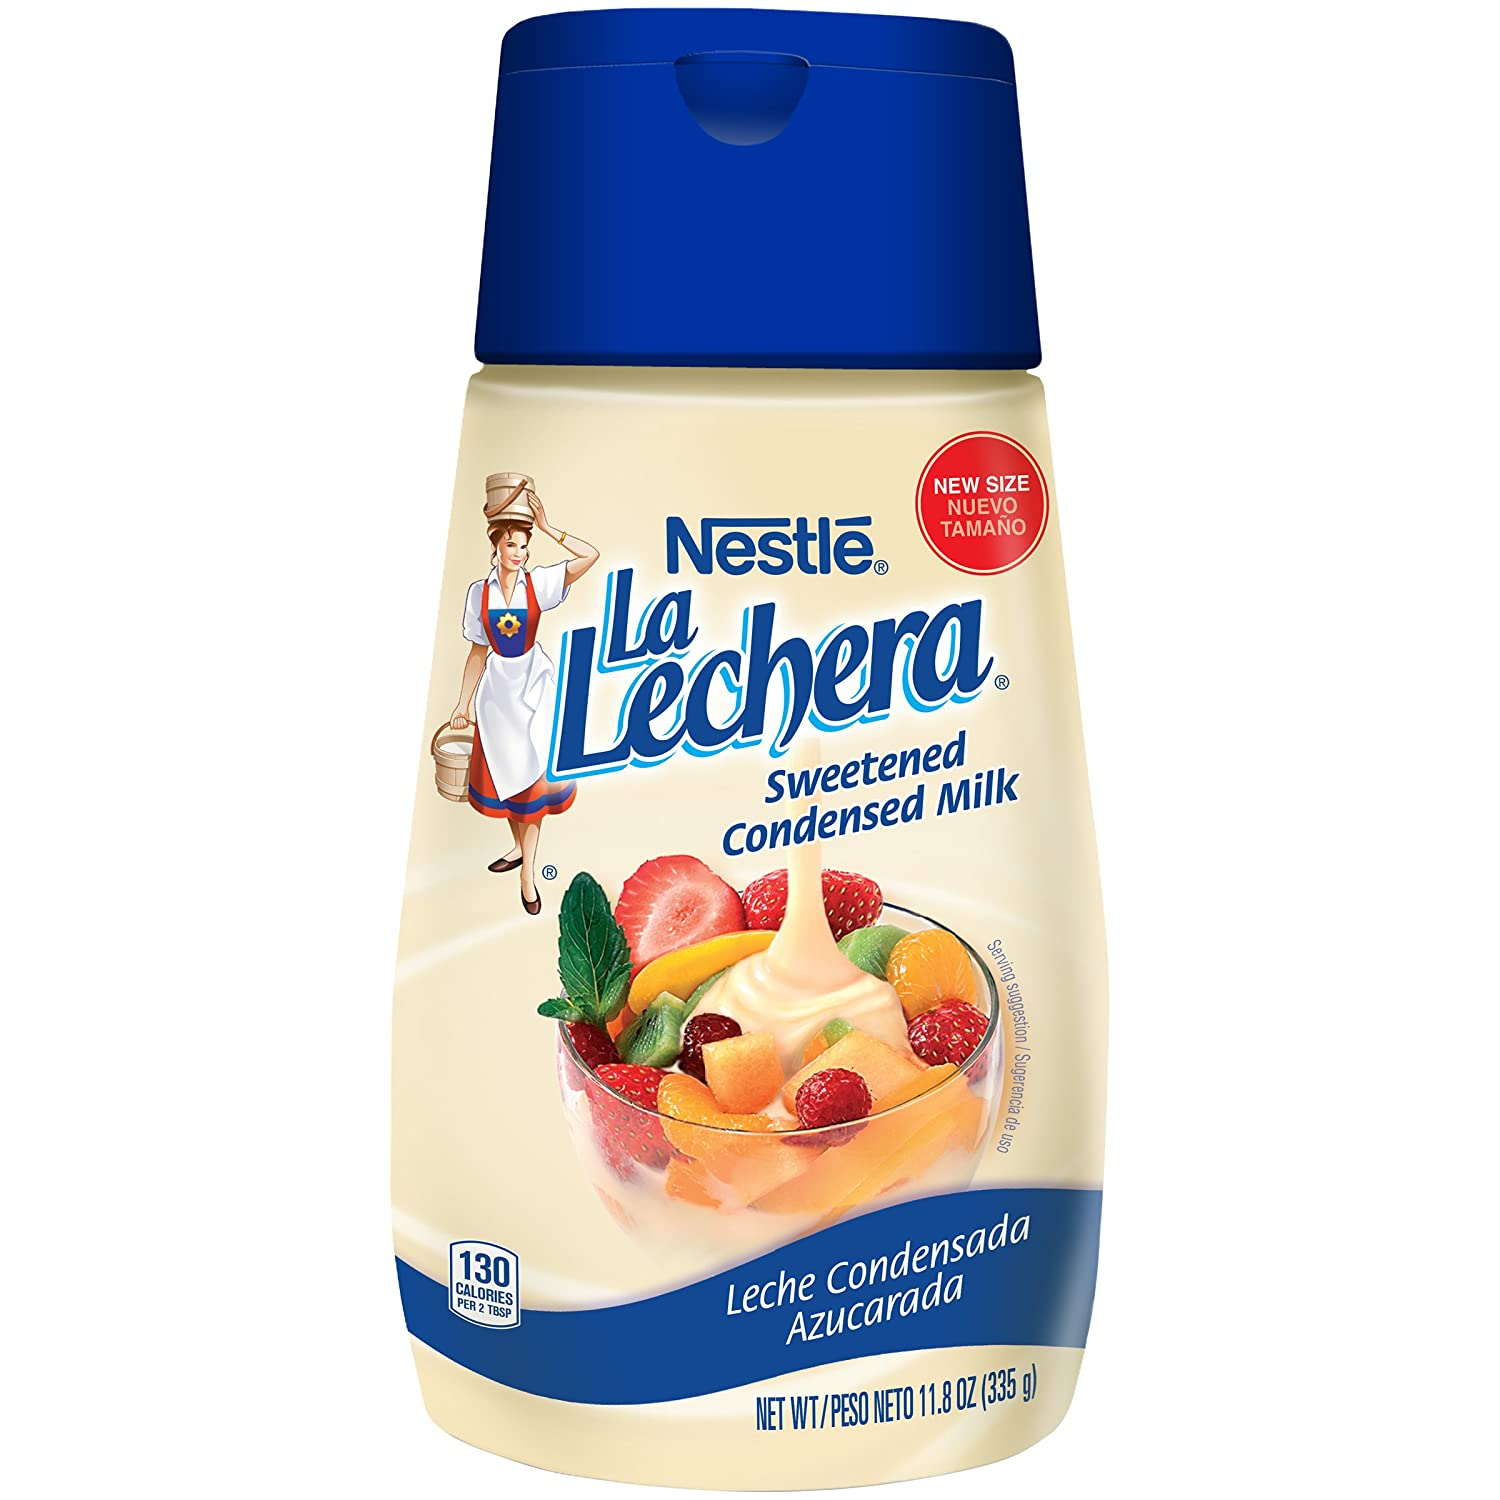 Nestle La Lechera Sweetened Condensed Milk, 11.8 oz (12 pack): Amazon.com: Grocery & Gourmet Food